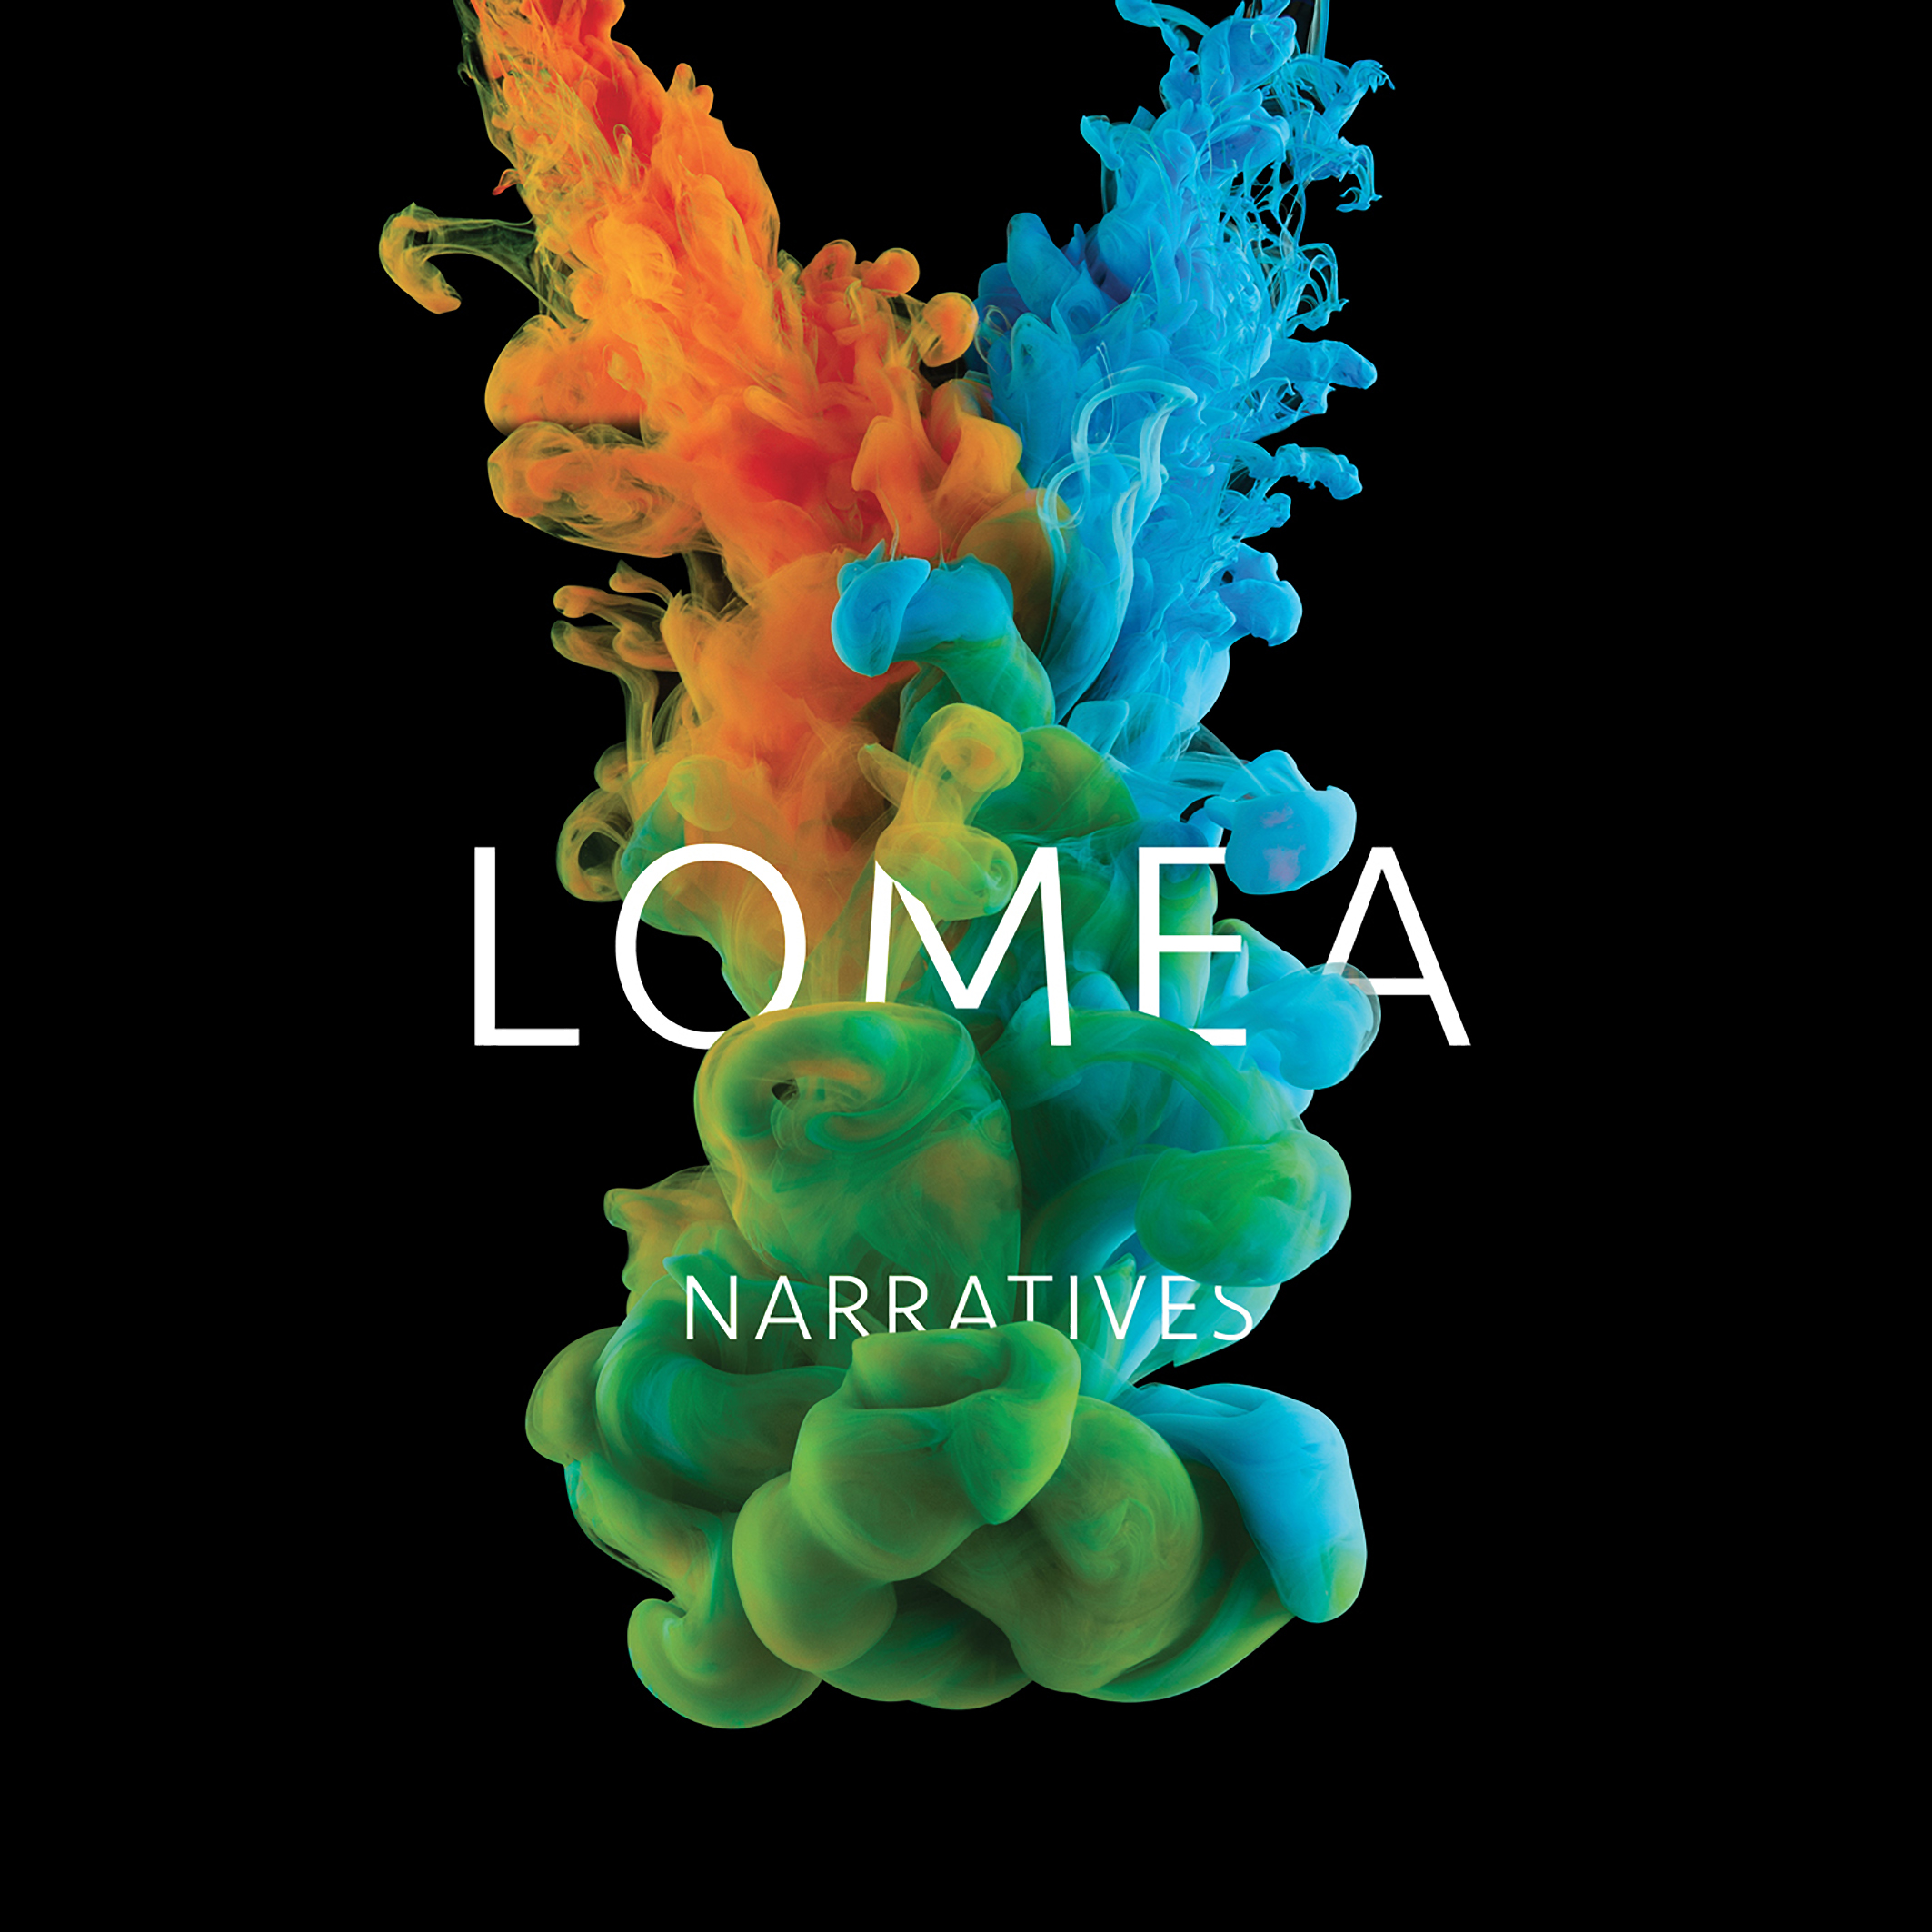 Found sounds, field recordings, layers of 12 string and numerous other guitars, new music from Lomea and his experimental electronica, cinematic sounds